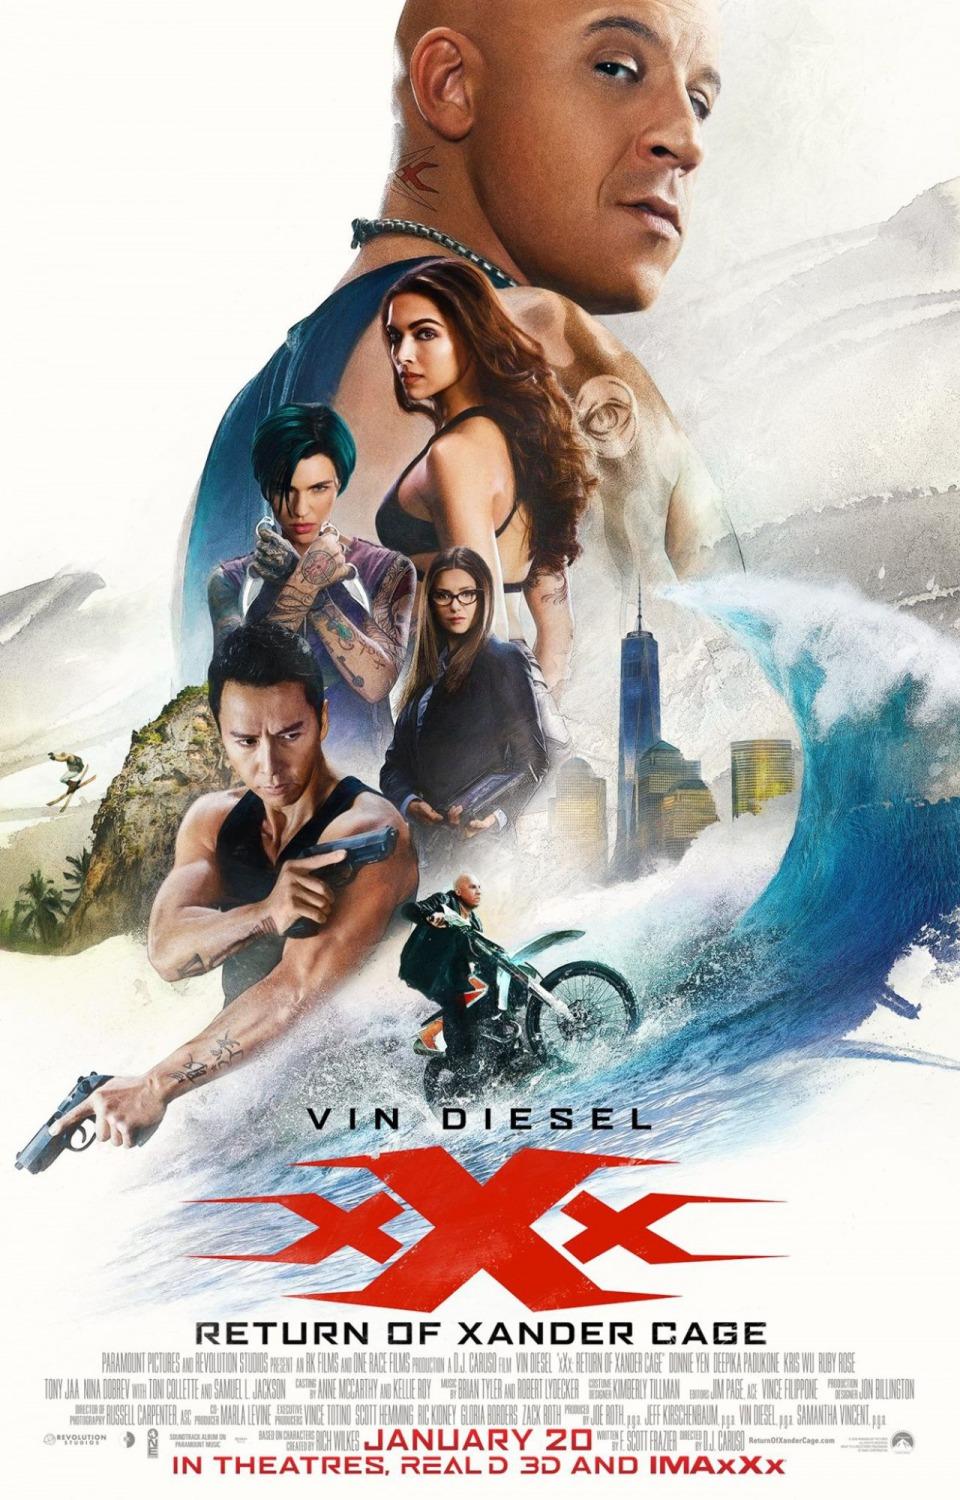 xxx_return_of_xander_cage_ver14_xlg